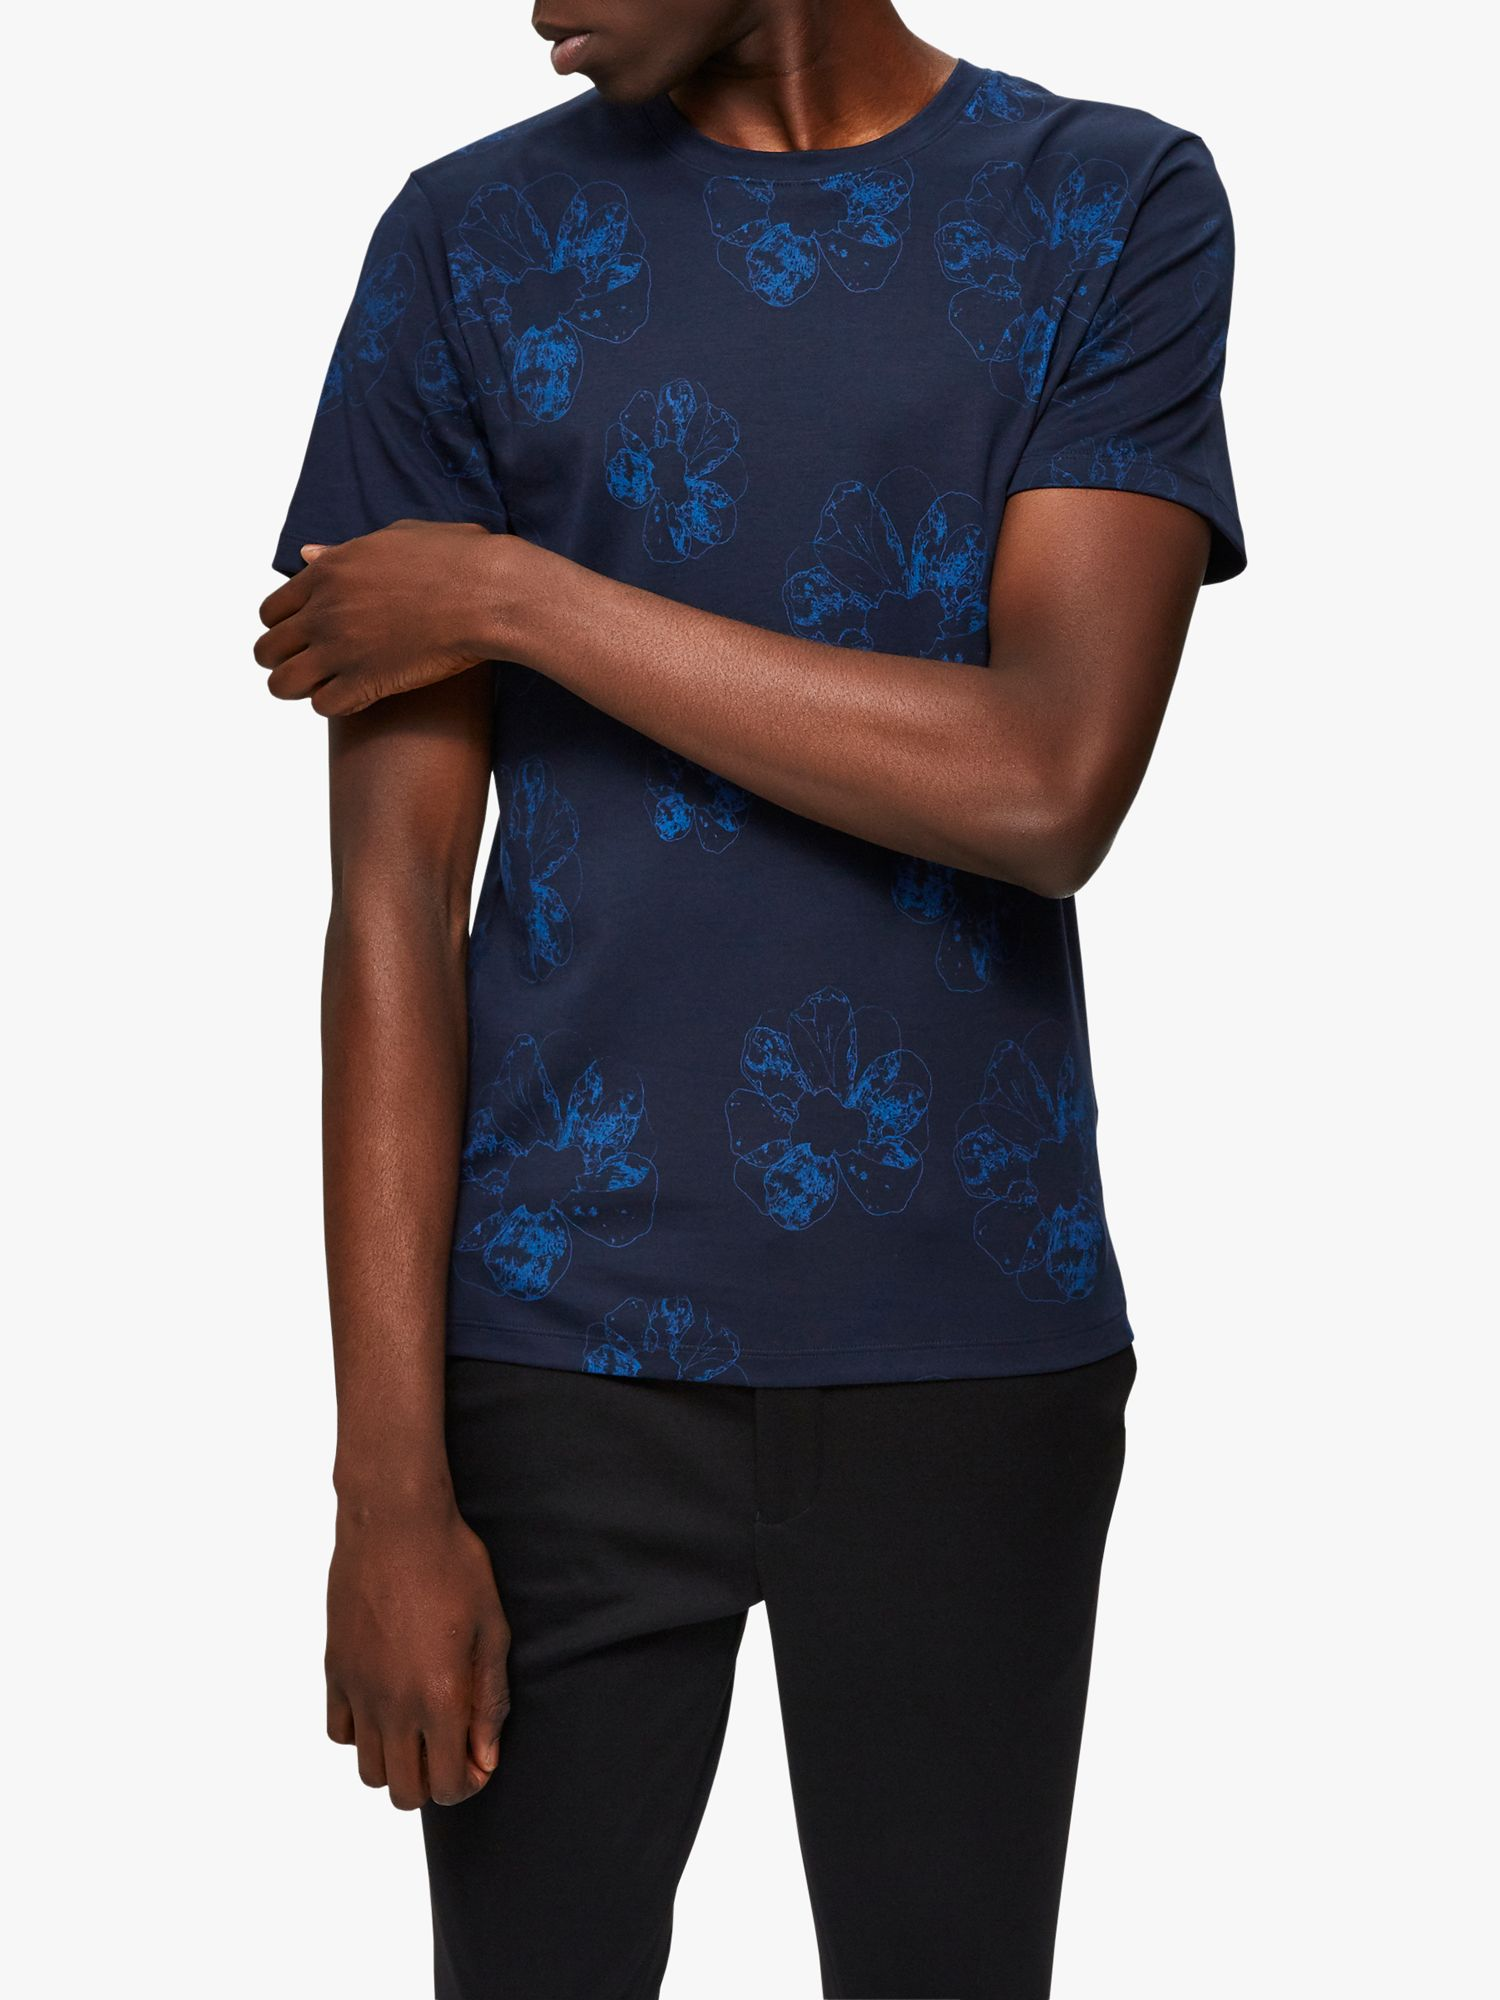 Selected Homme SELECTED HOMME Short Sleeve Floral T-Shirt, Sky Captain